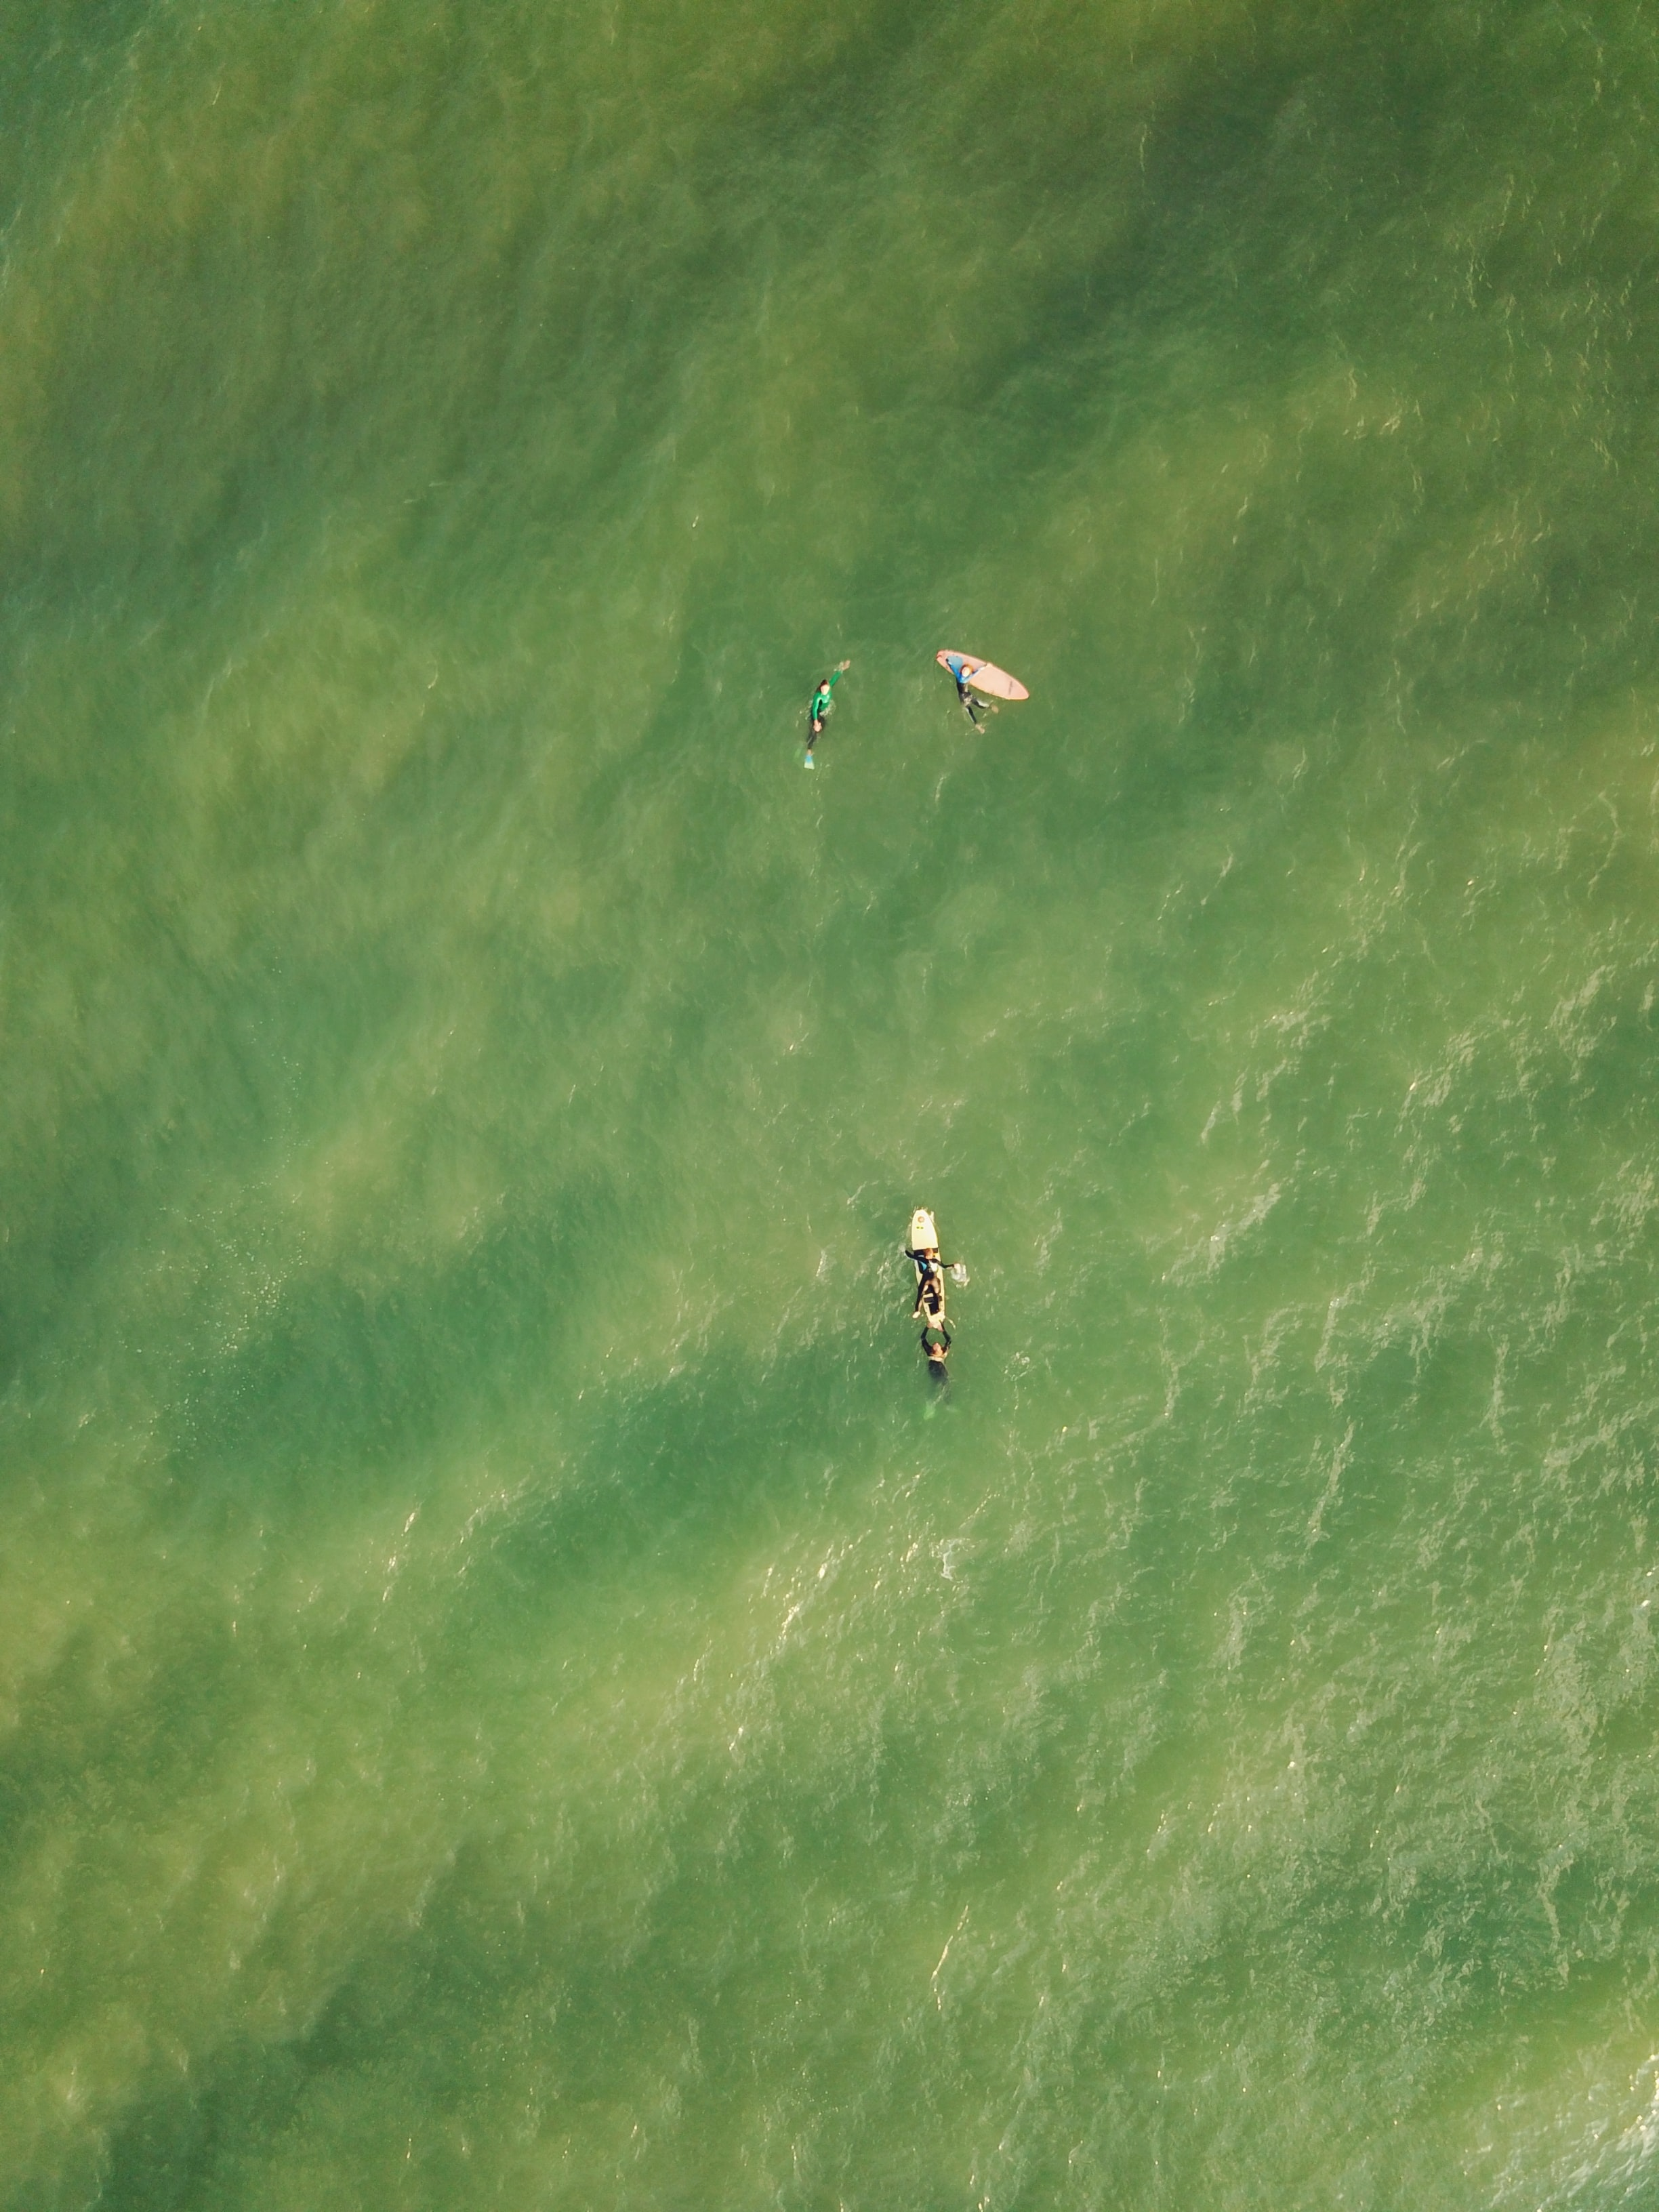 aerial photography of three person on surfing board floating above body of water